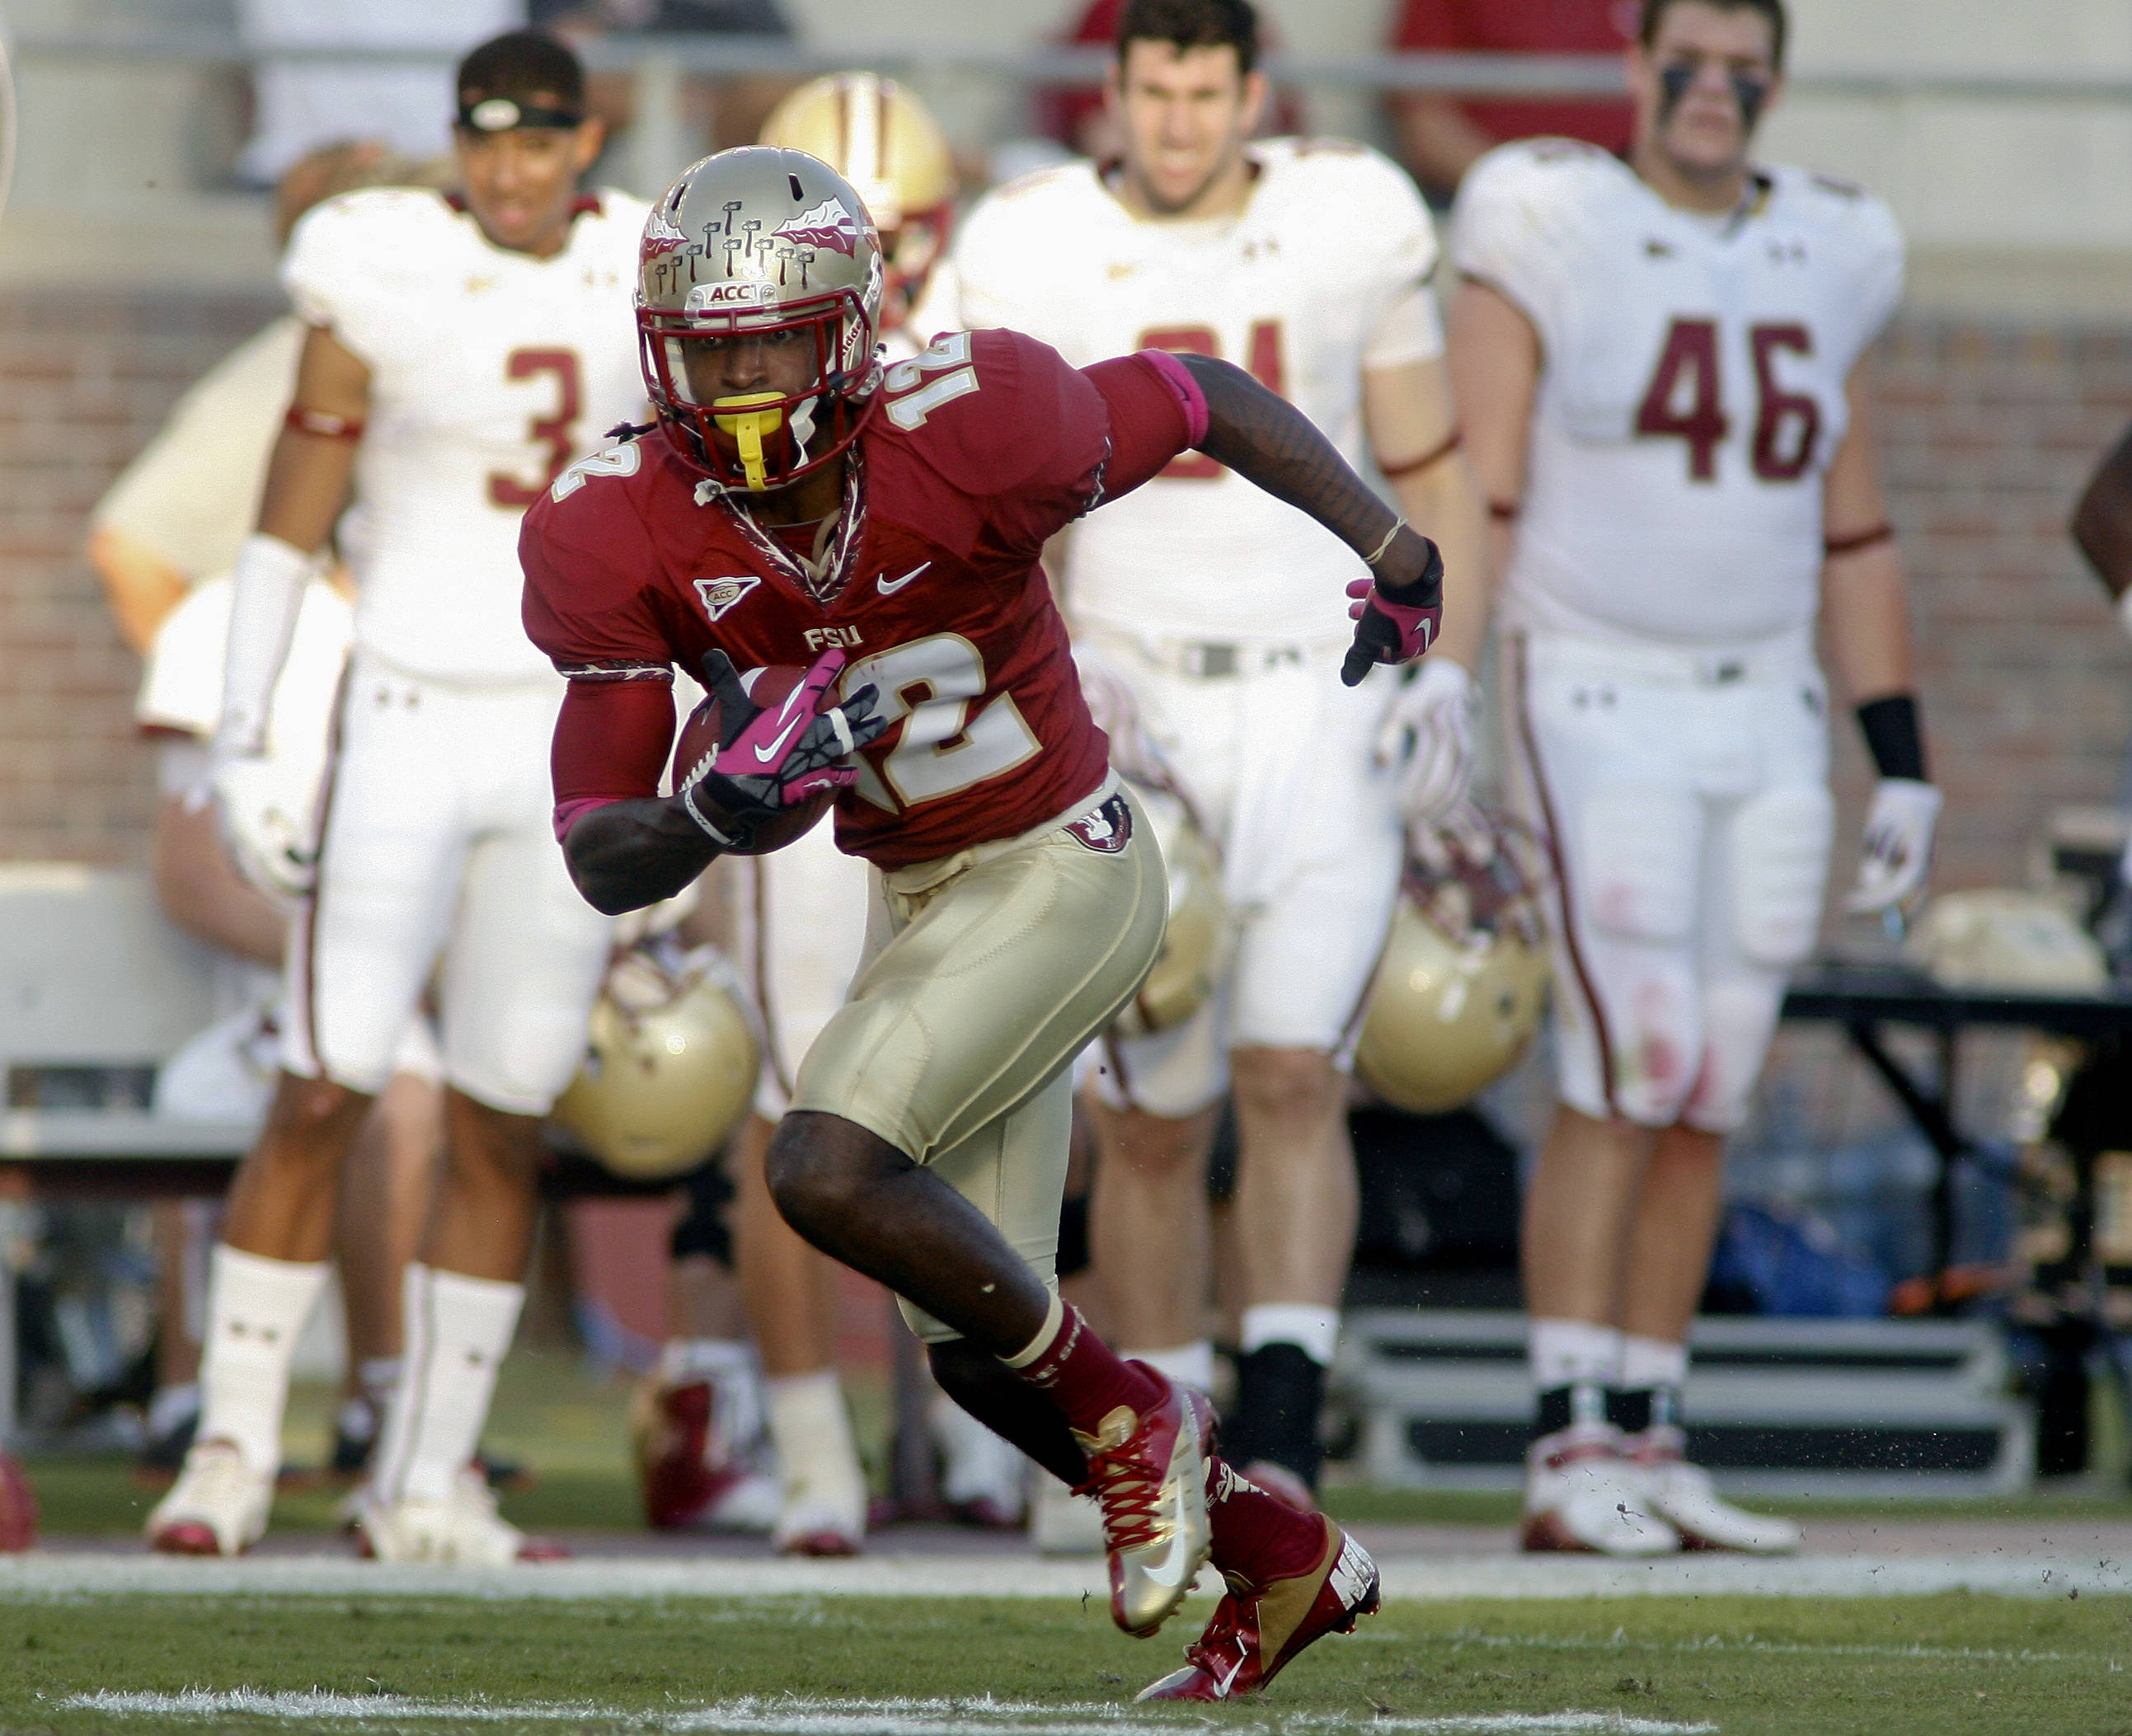 Florida State wide receiver Jarred Haggins (12) runs for a 42-yard gain after catching a pass in the first quarter. (AP Photo/Phil Sears)